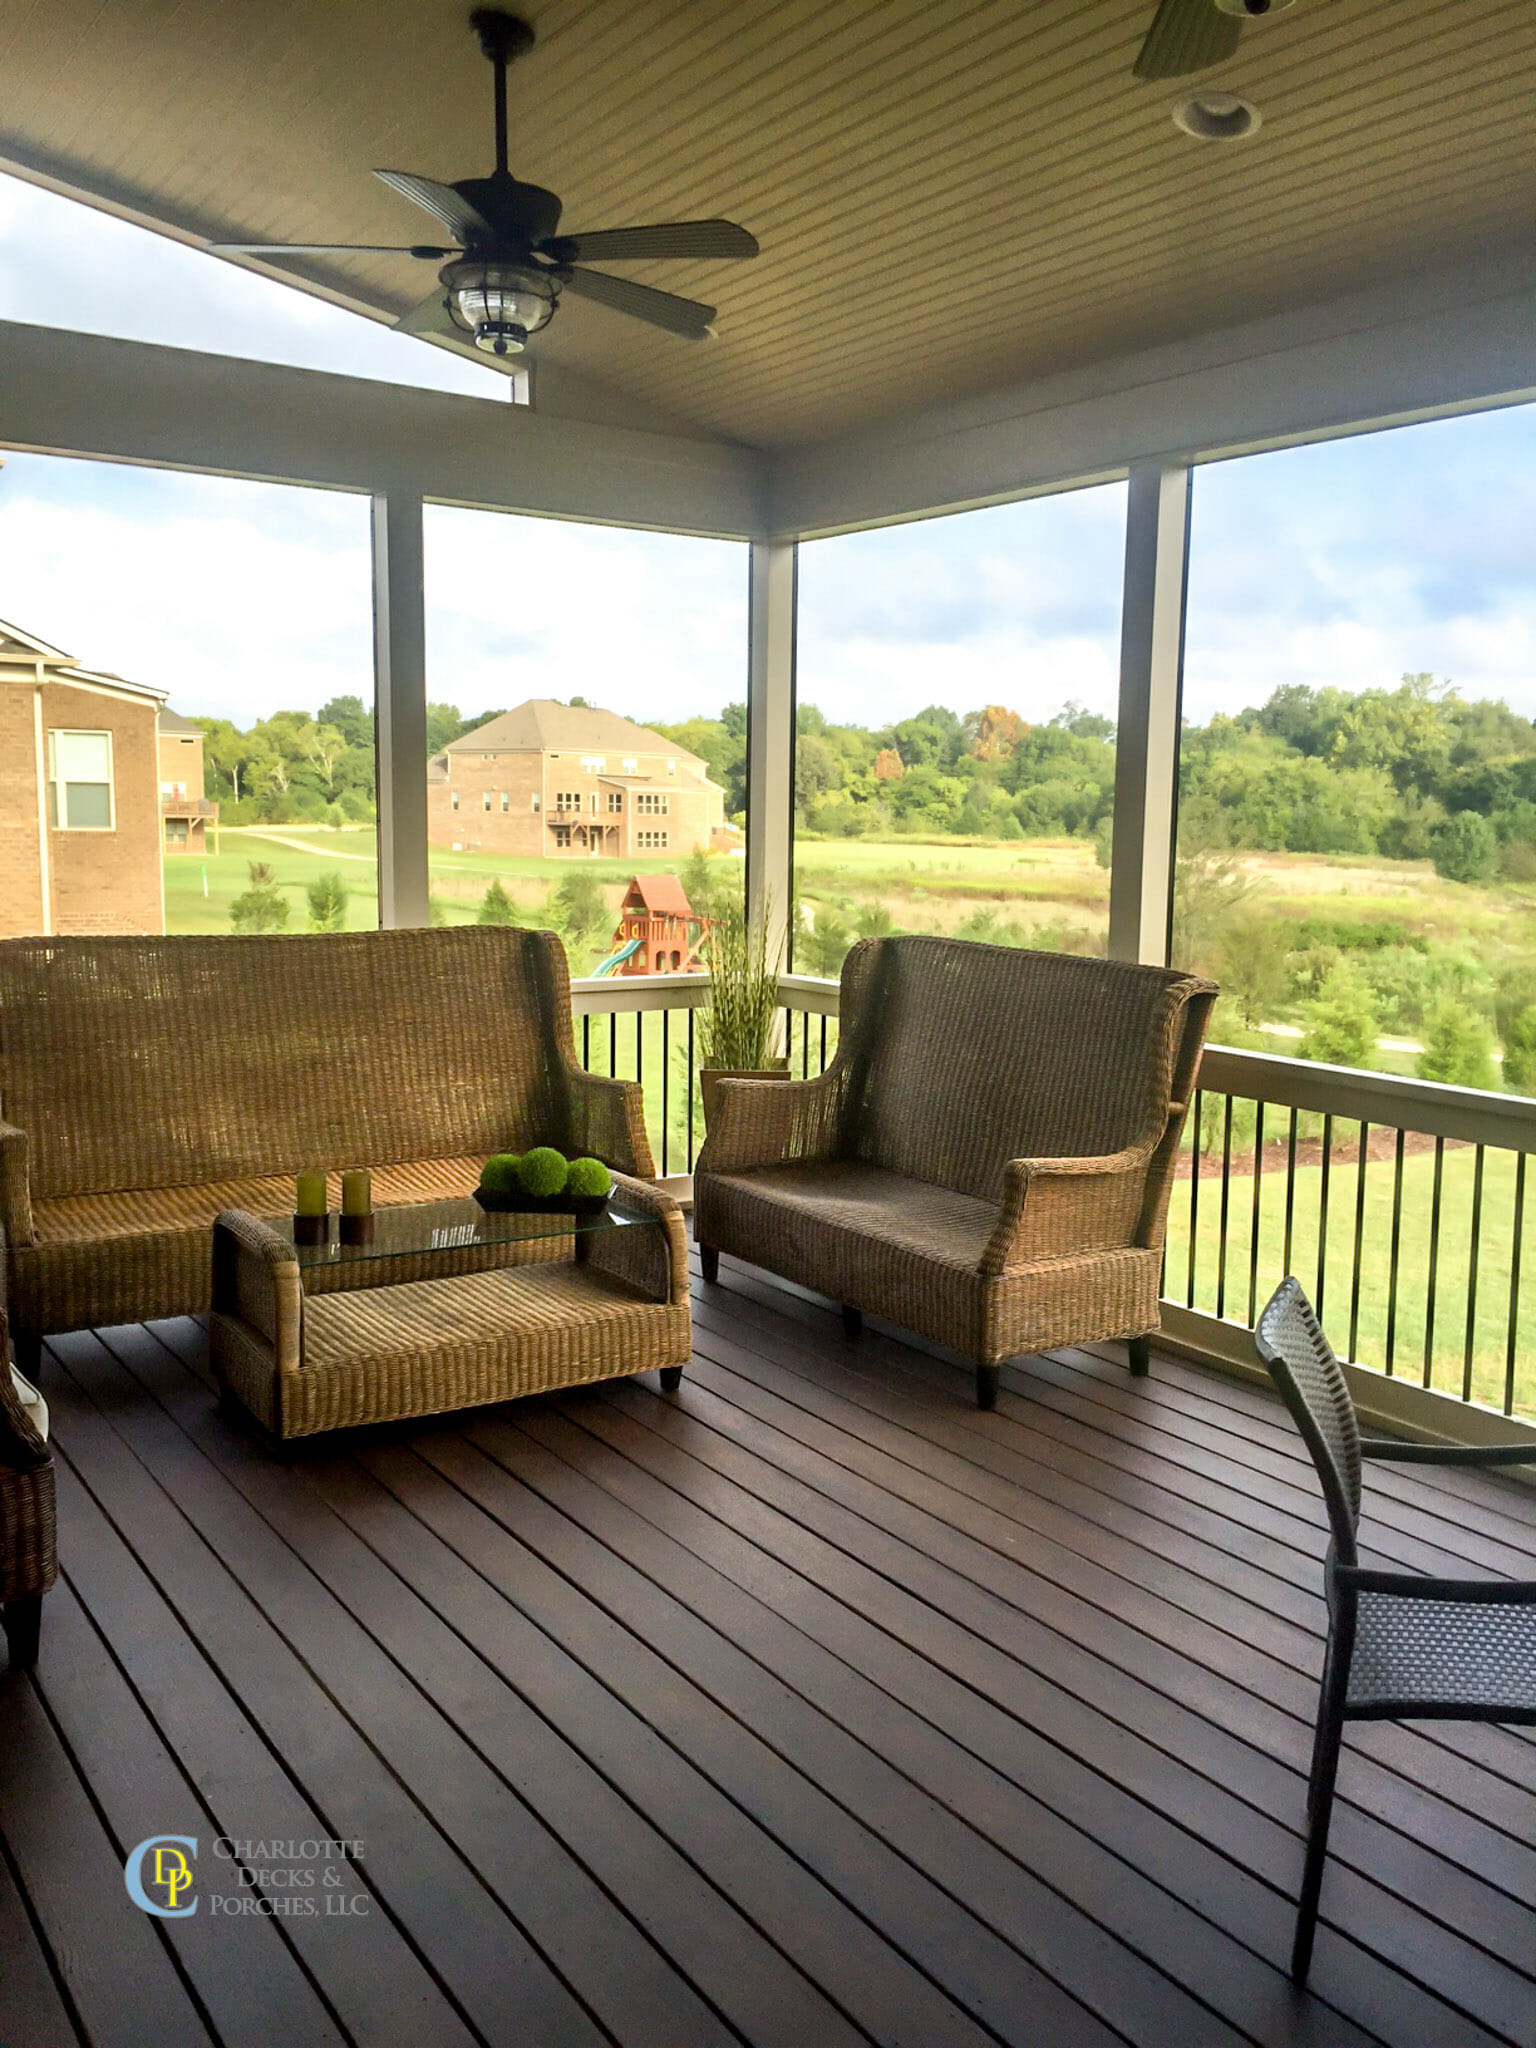 screened porch photos charlotte decks and porches llc. Black Bedroom Furniture Sets. Home Design Ideas